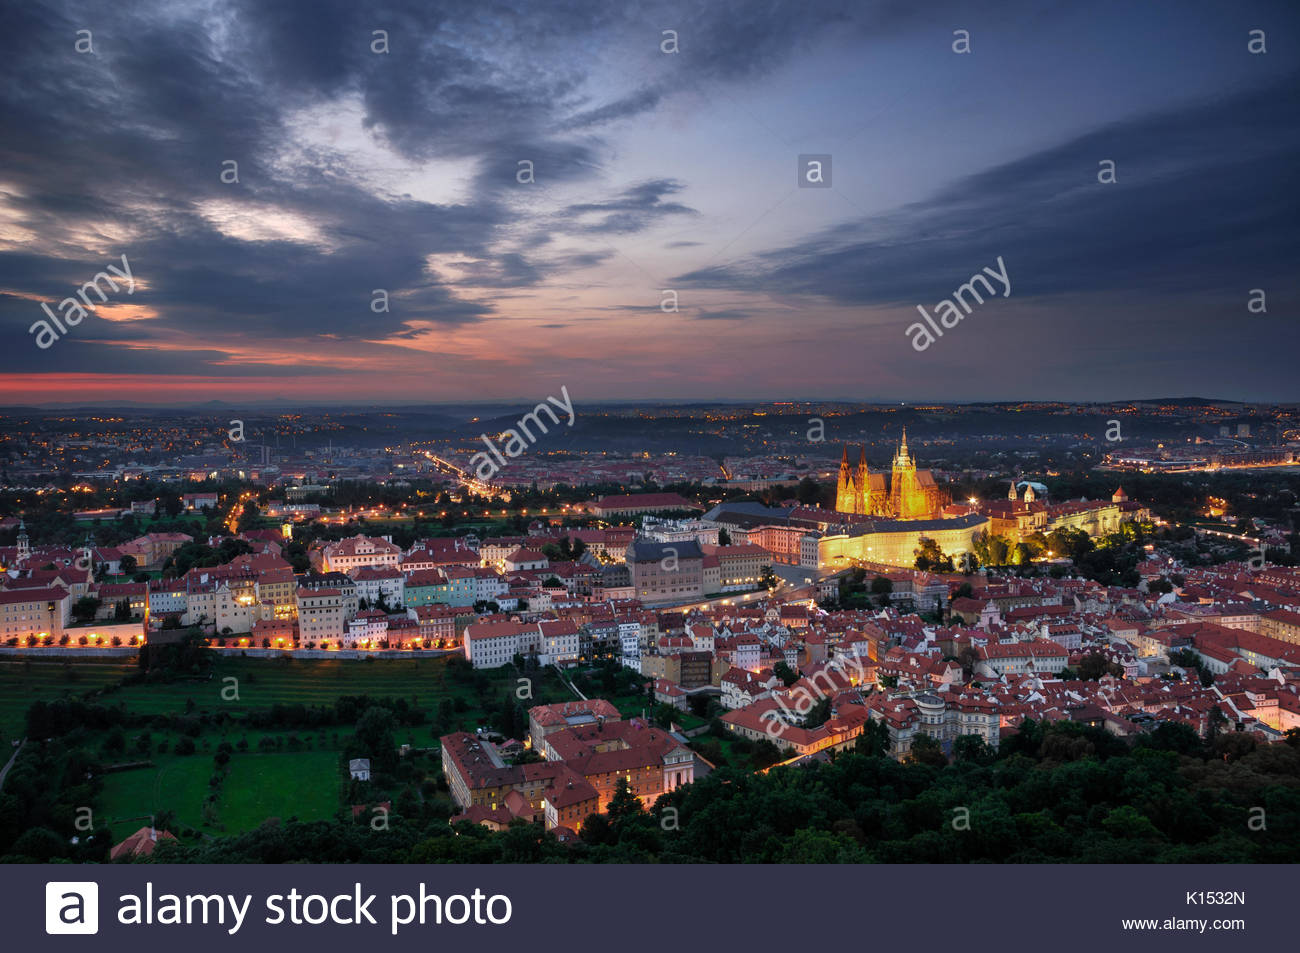 Aerial view at St. Vitus Cathedral during cloudy sunset, Prague, Czech republic. - Stock Image